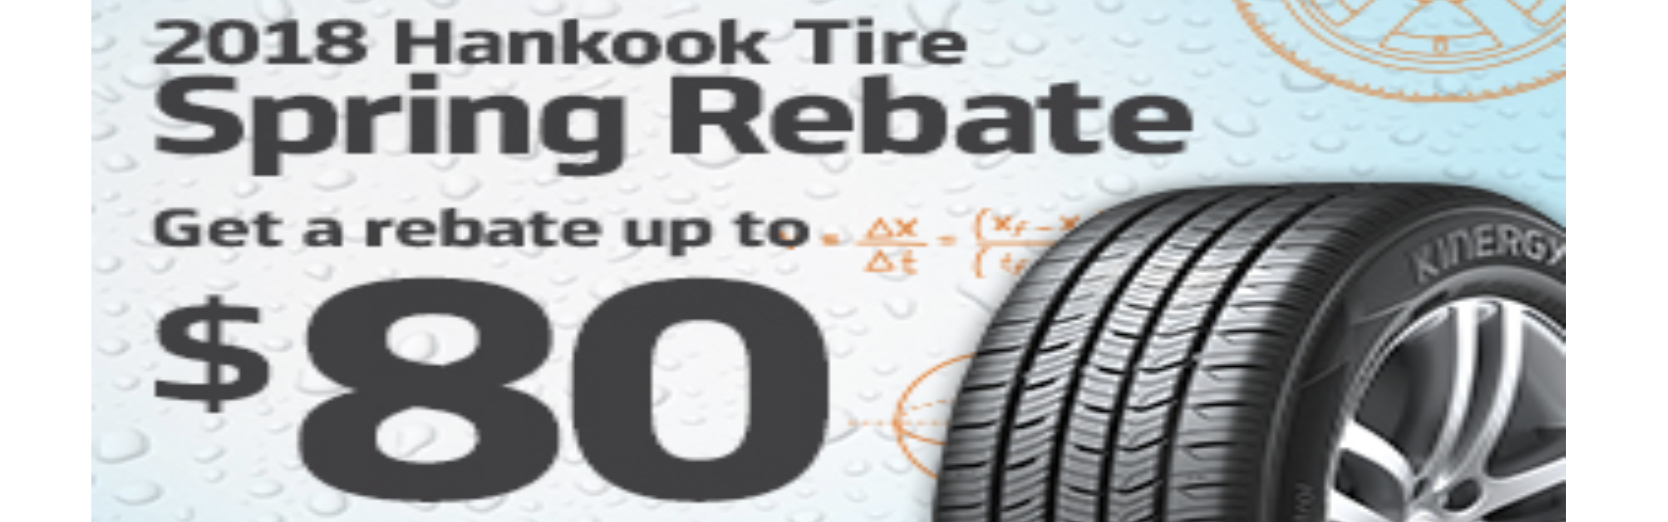 Hankook Tire Canada Spring 2018 Rebate